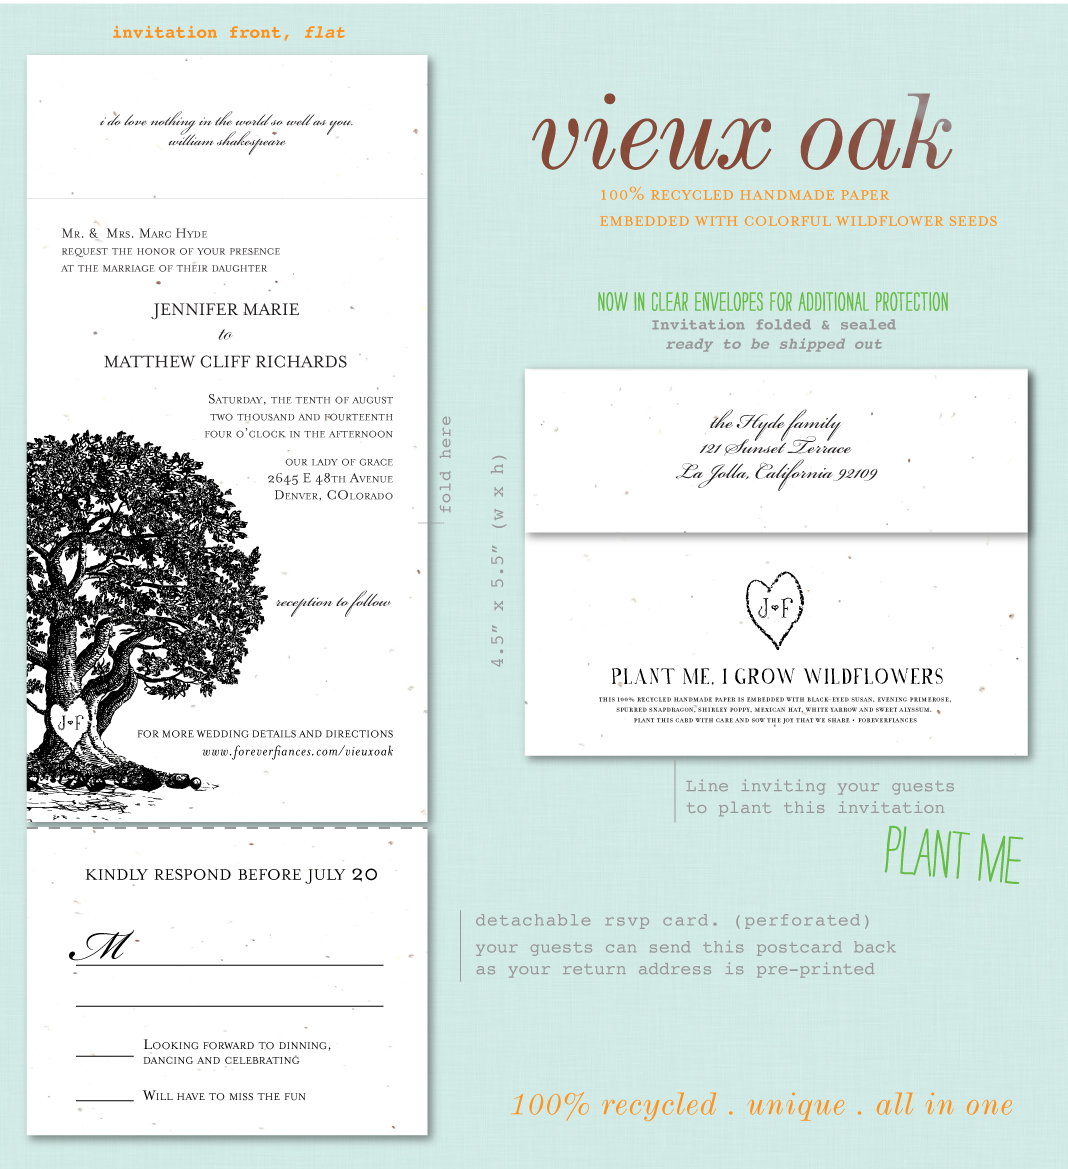 organic recycled wedding invitations plantable wedding invitations Organic Wedding Invitations Vieux Oak Plantable Paper Also